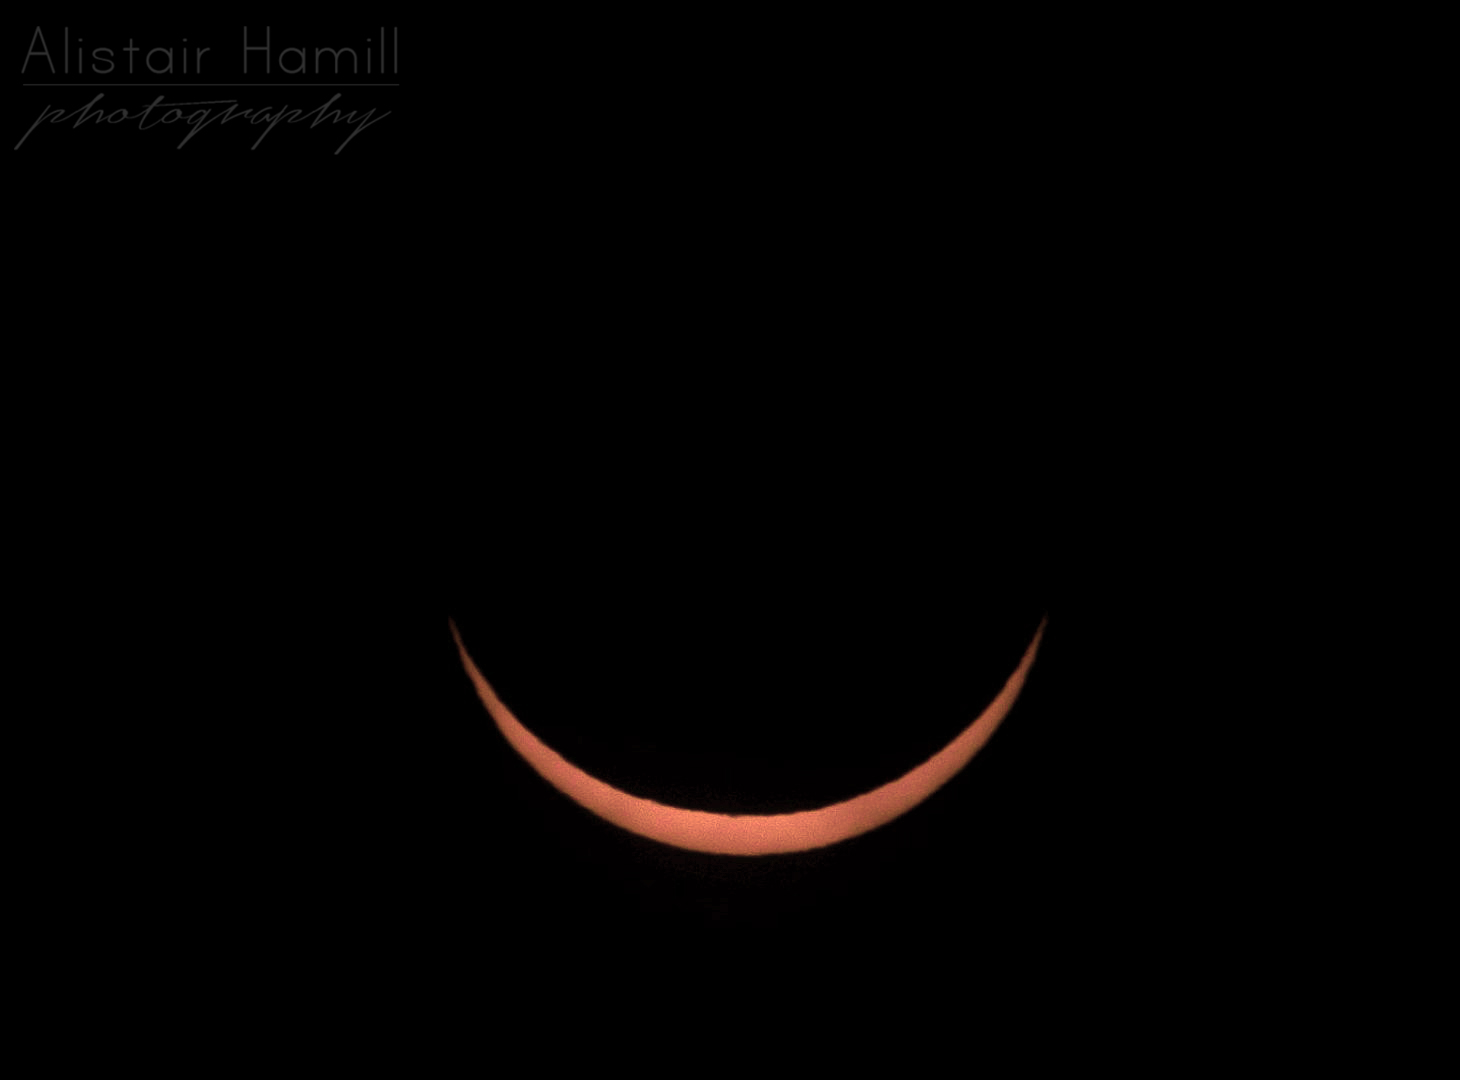 The sun at maximum eclipse, when around 93% of it was cover by the moon's disc, and the sun turned into a smiling emoji with very tightly closed eyes, by all accounts!